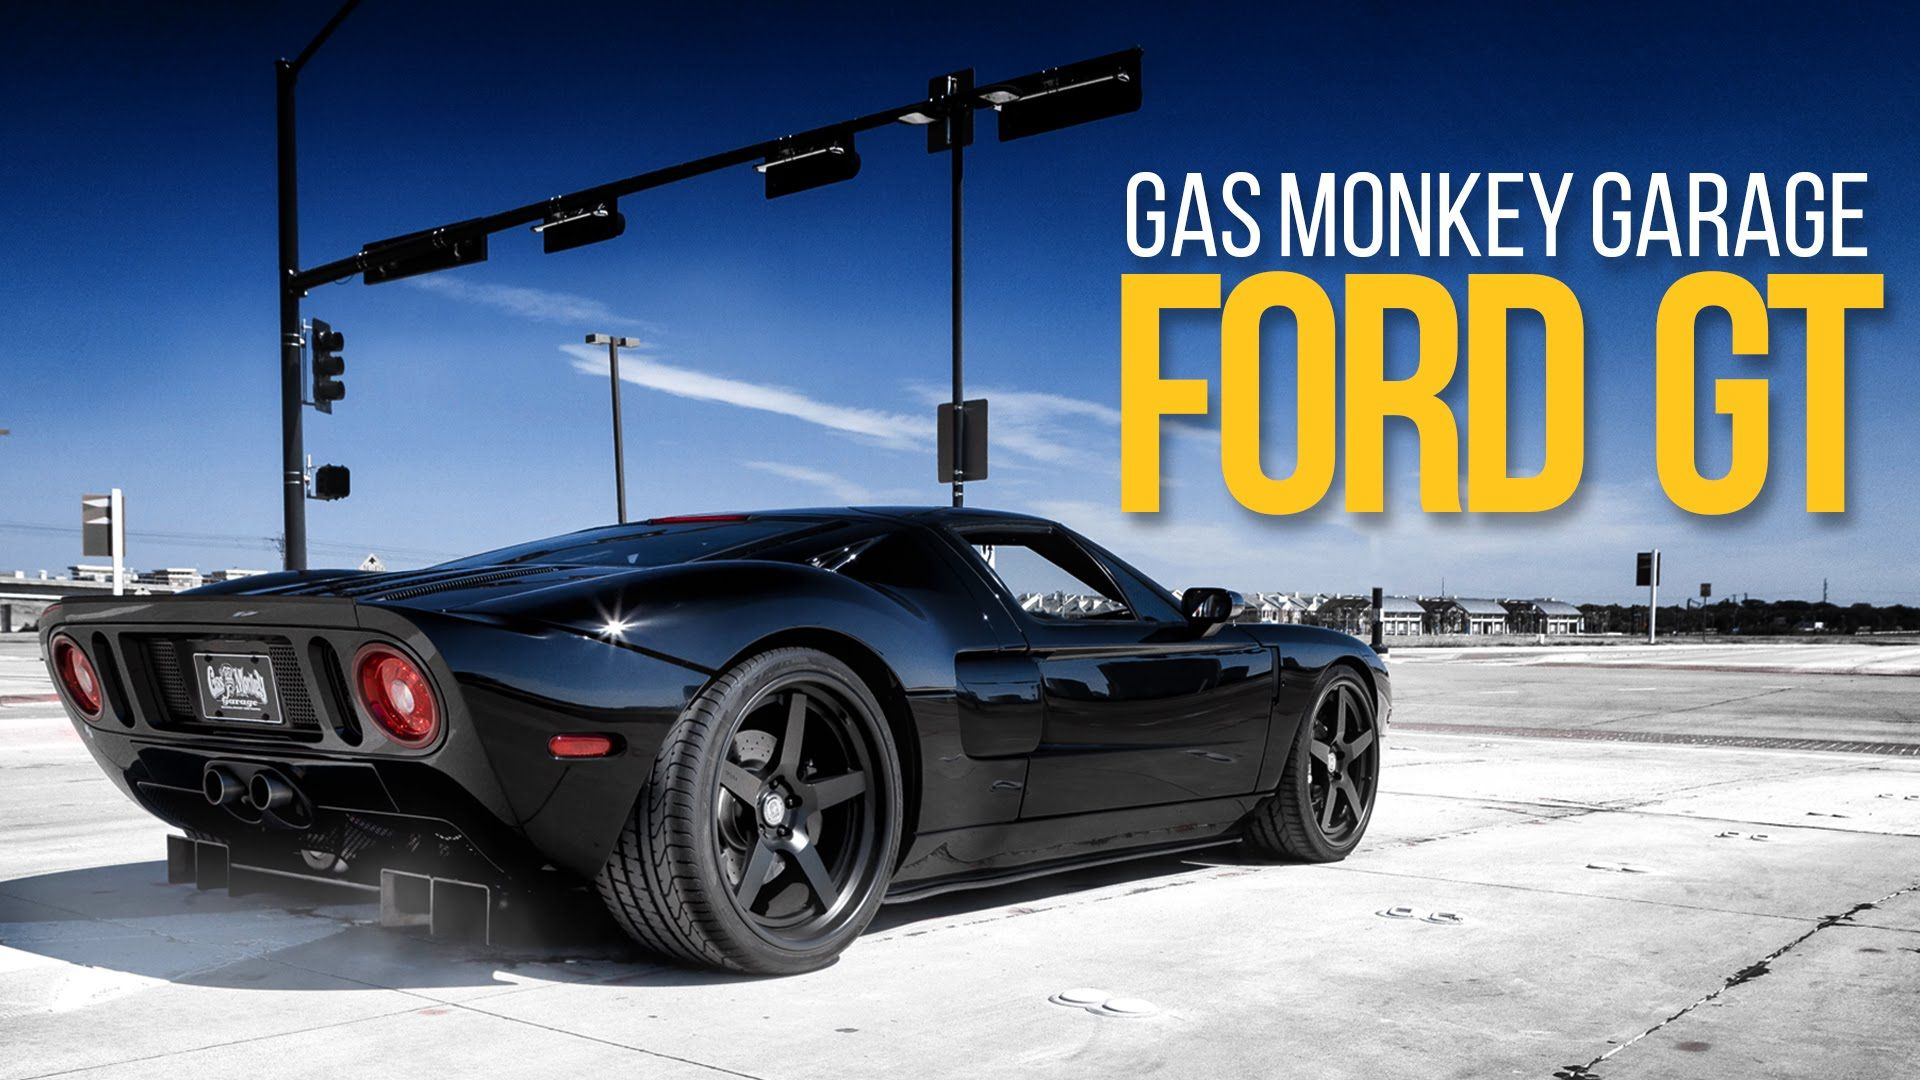 Loud And Fast Gt Build Google Search Gas Monkey Garage Ford Gt Vehicles